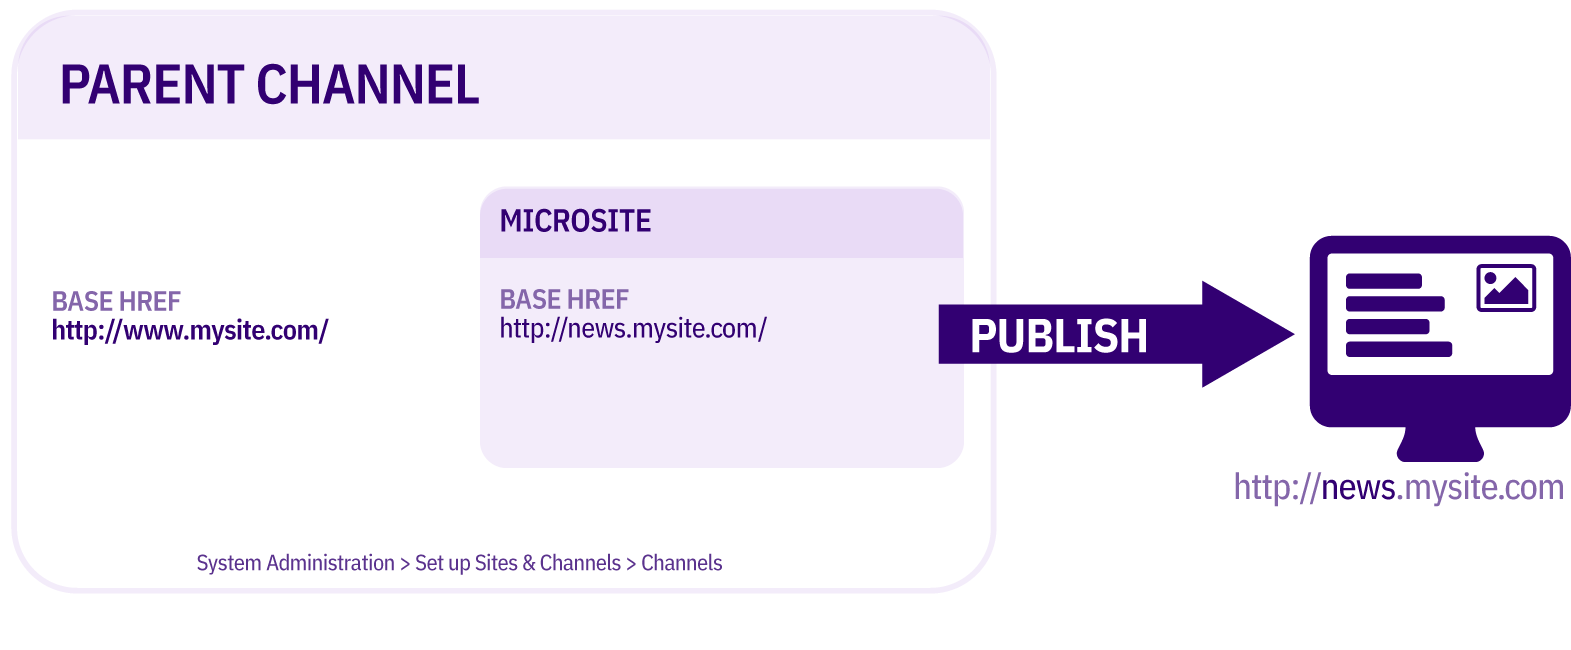 Diagram showing Fully Formed Microsite Subdomain publish